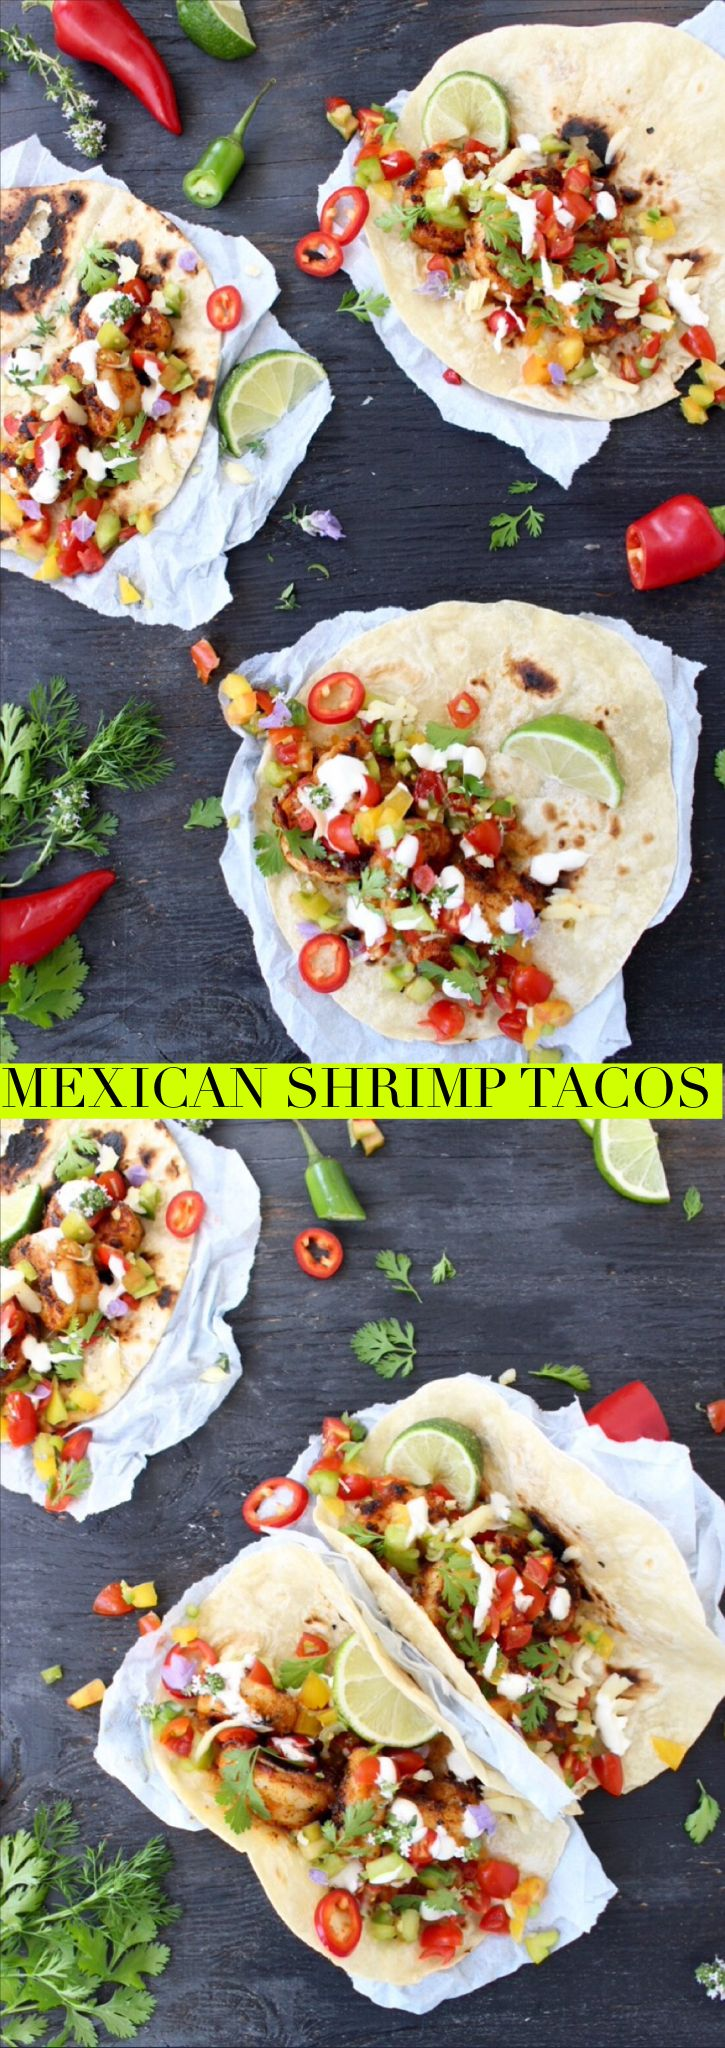 100 shrimp taco recipes on pinterest shrimp dinner for Pioneer woman fish tacos